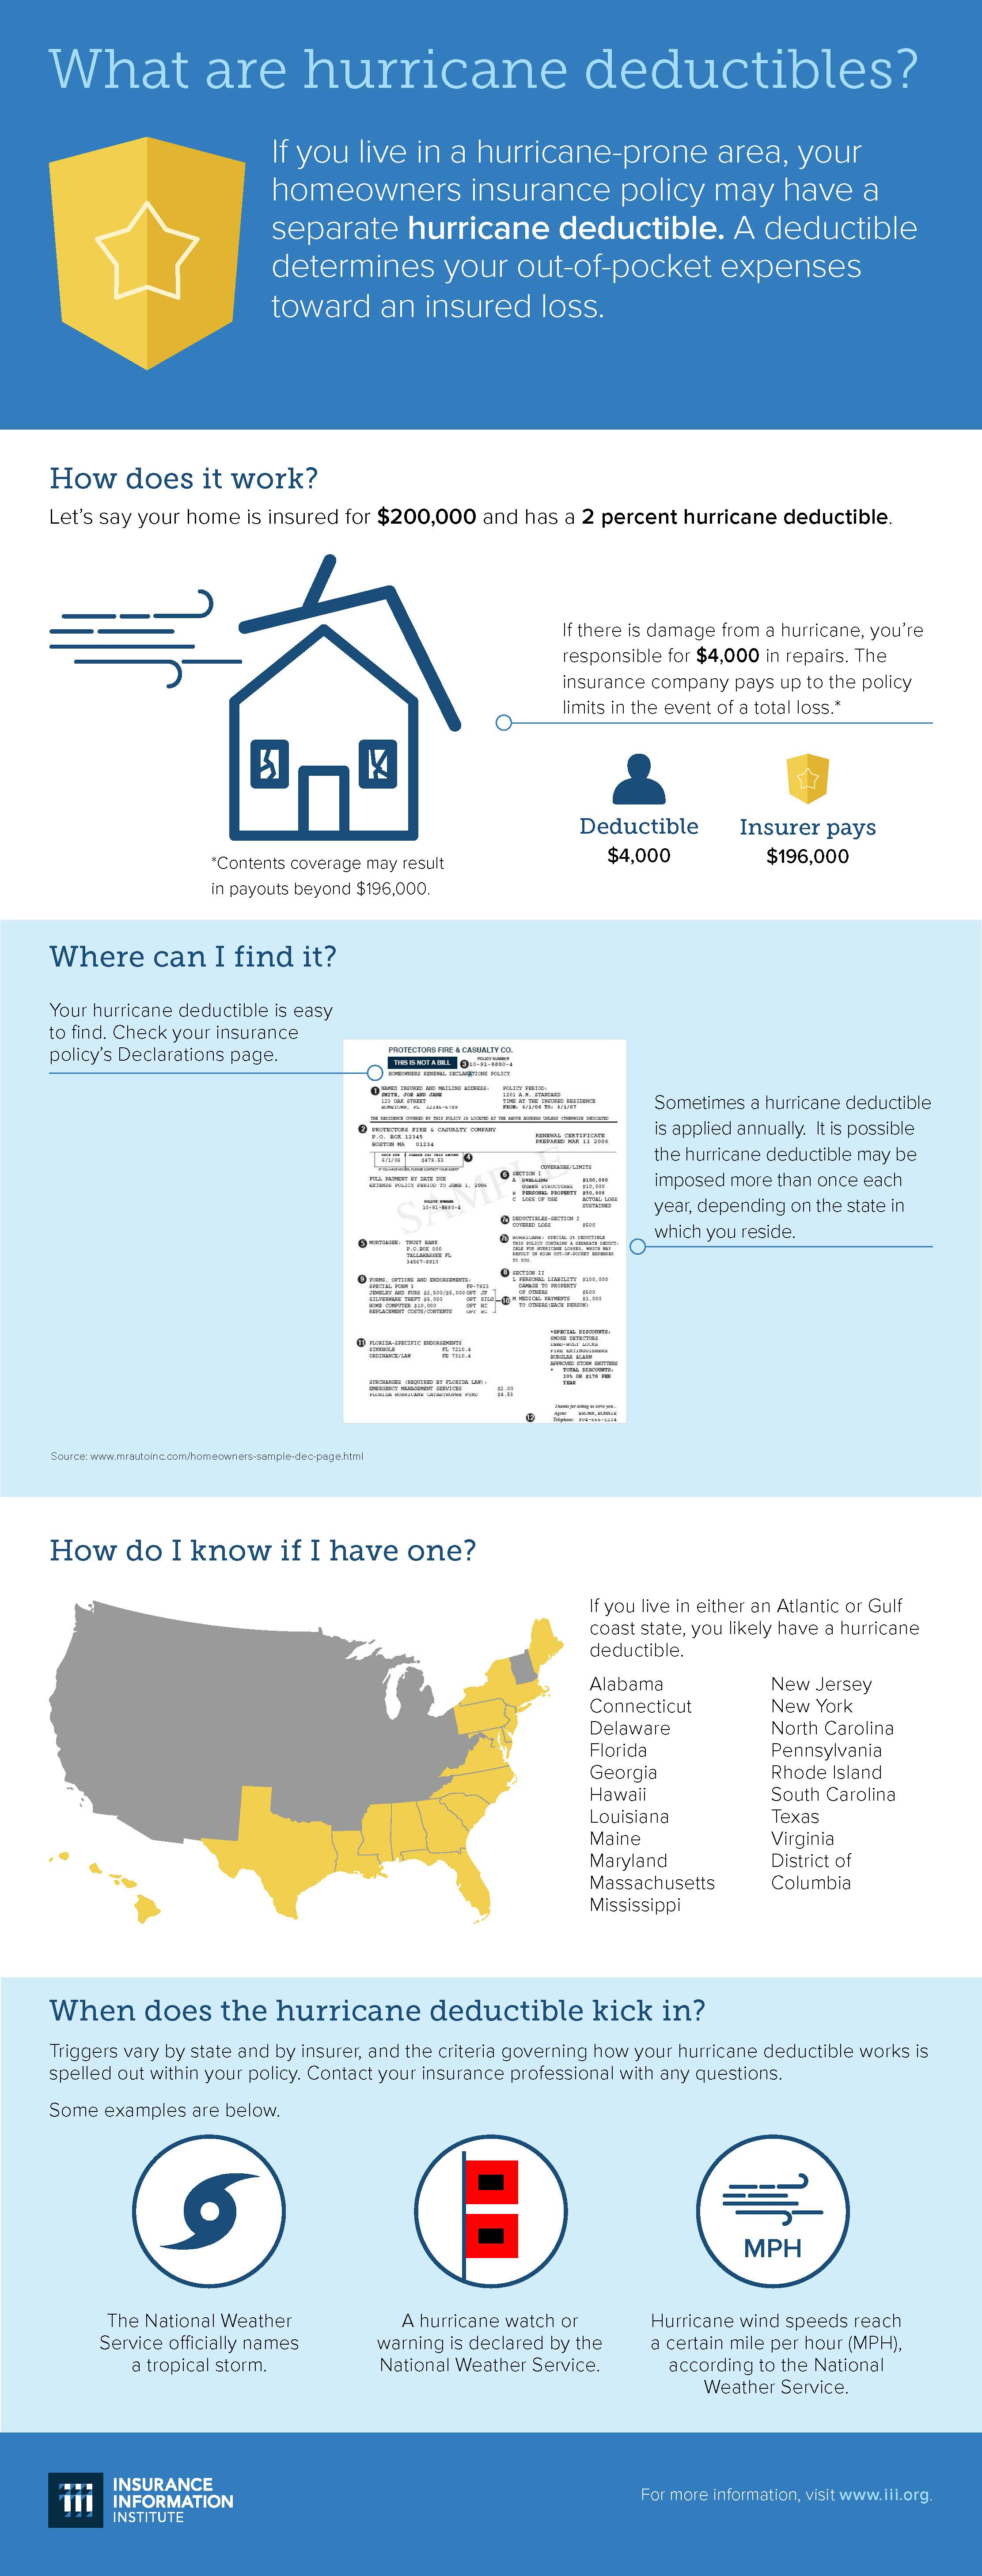 hurricane_deductibles_infographic_18